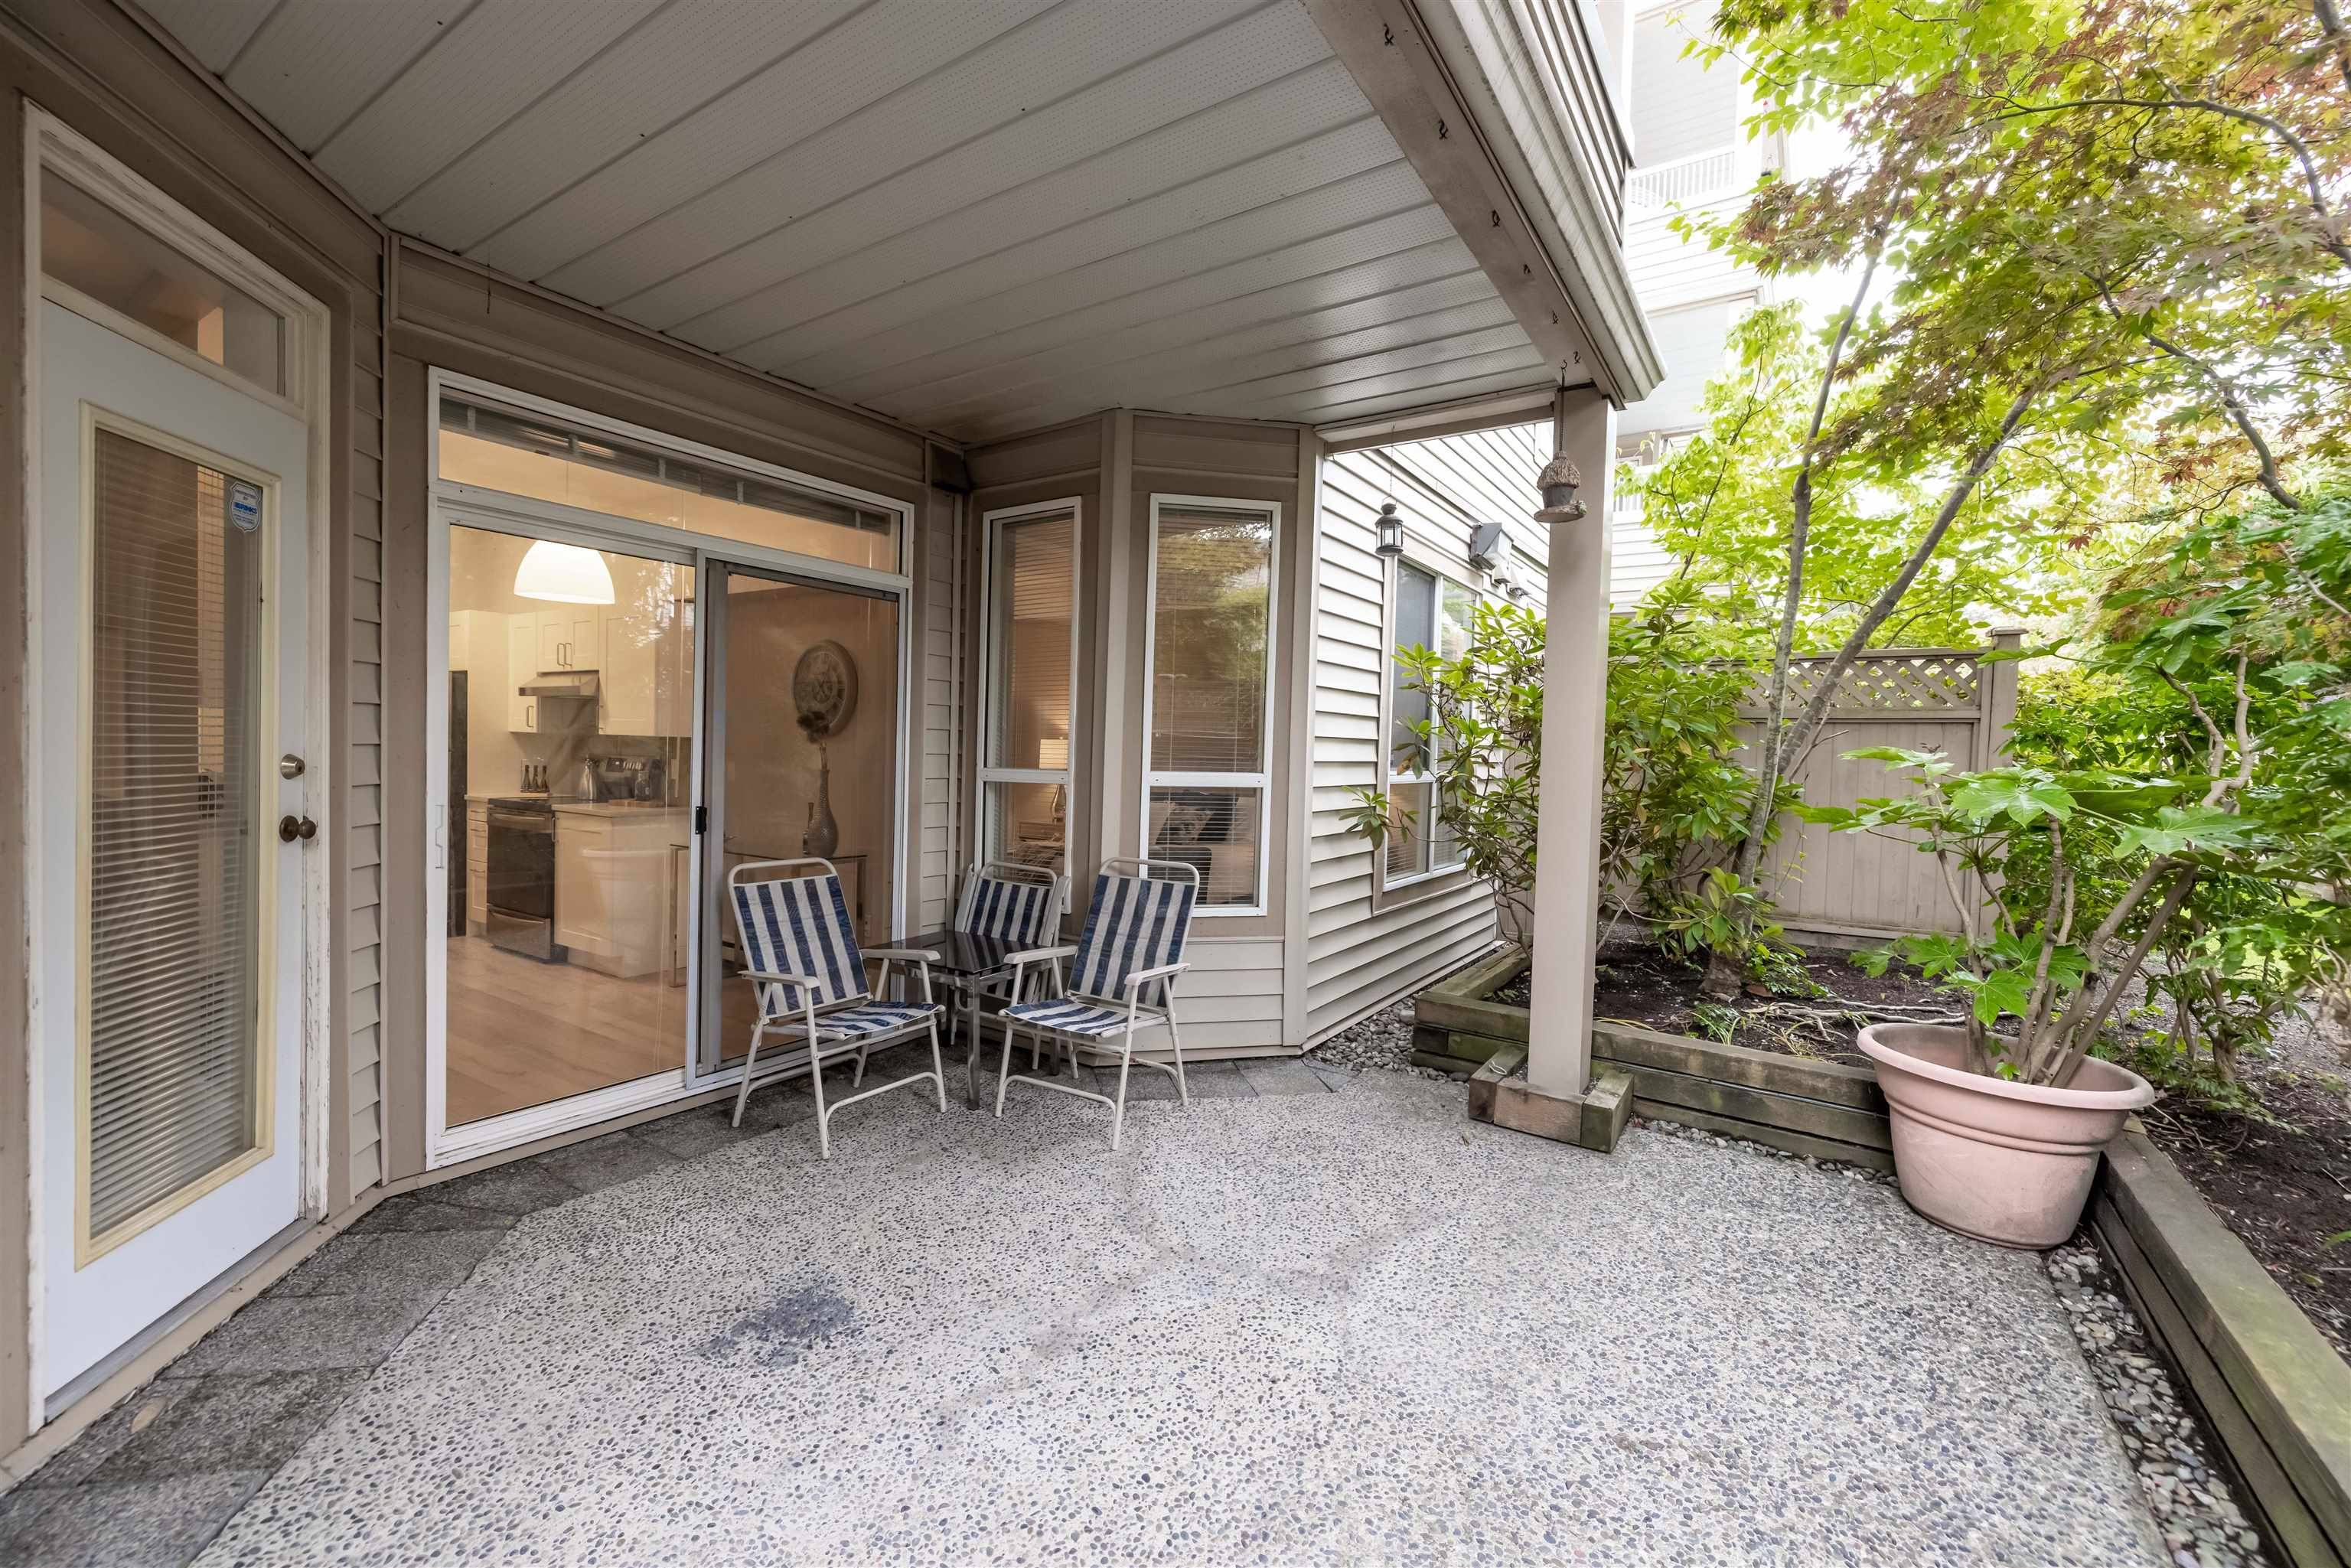 105 8139 121A STREET - Queen Mary Park Surrey Apartment/Condo for sale, 2 Bedrooms (R2623168) - #28